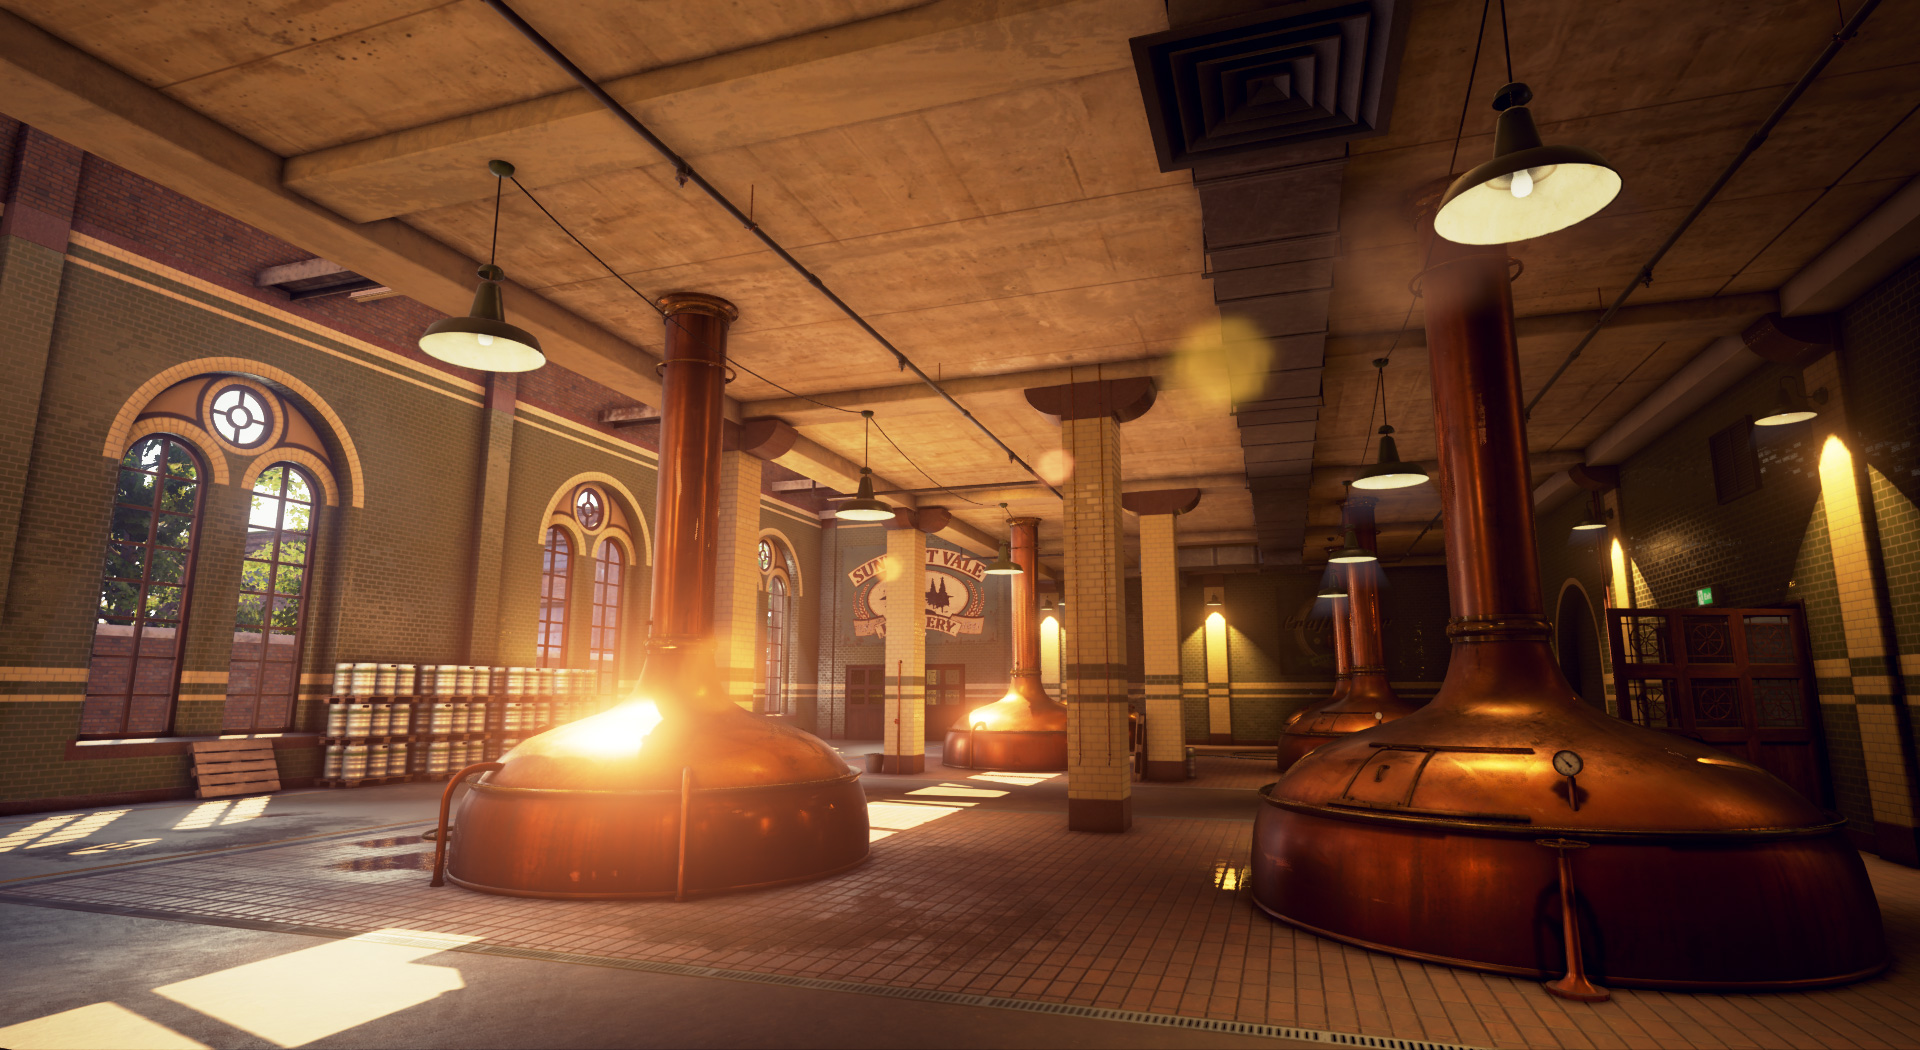 unreal 4 brewery screenshot 02